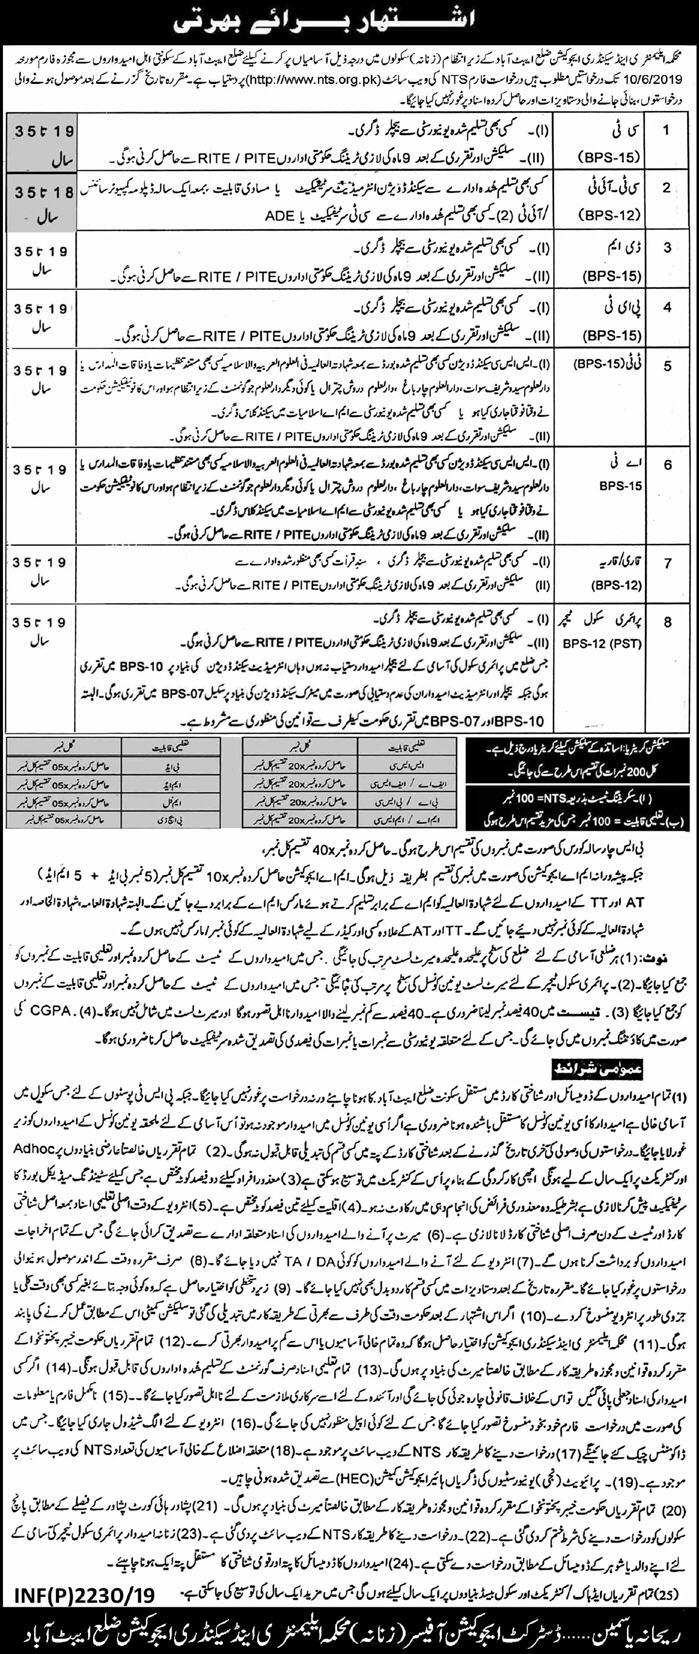 KPK Elementary and Secondary Education Department Jobs 2019 NTS Application Form Download Online